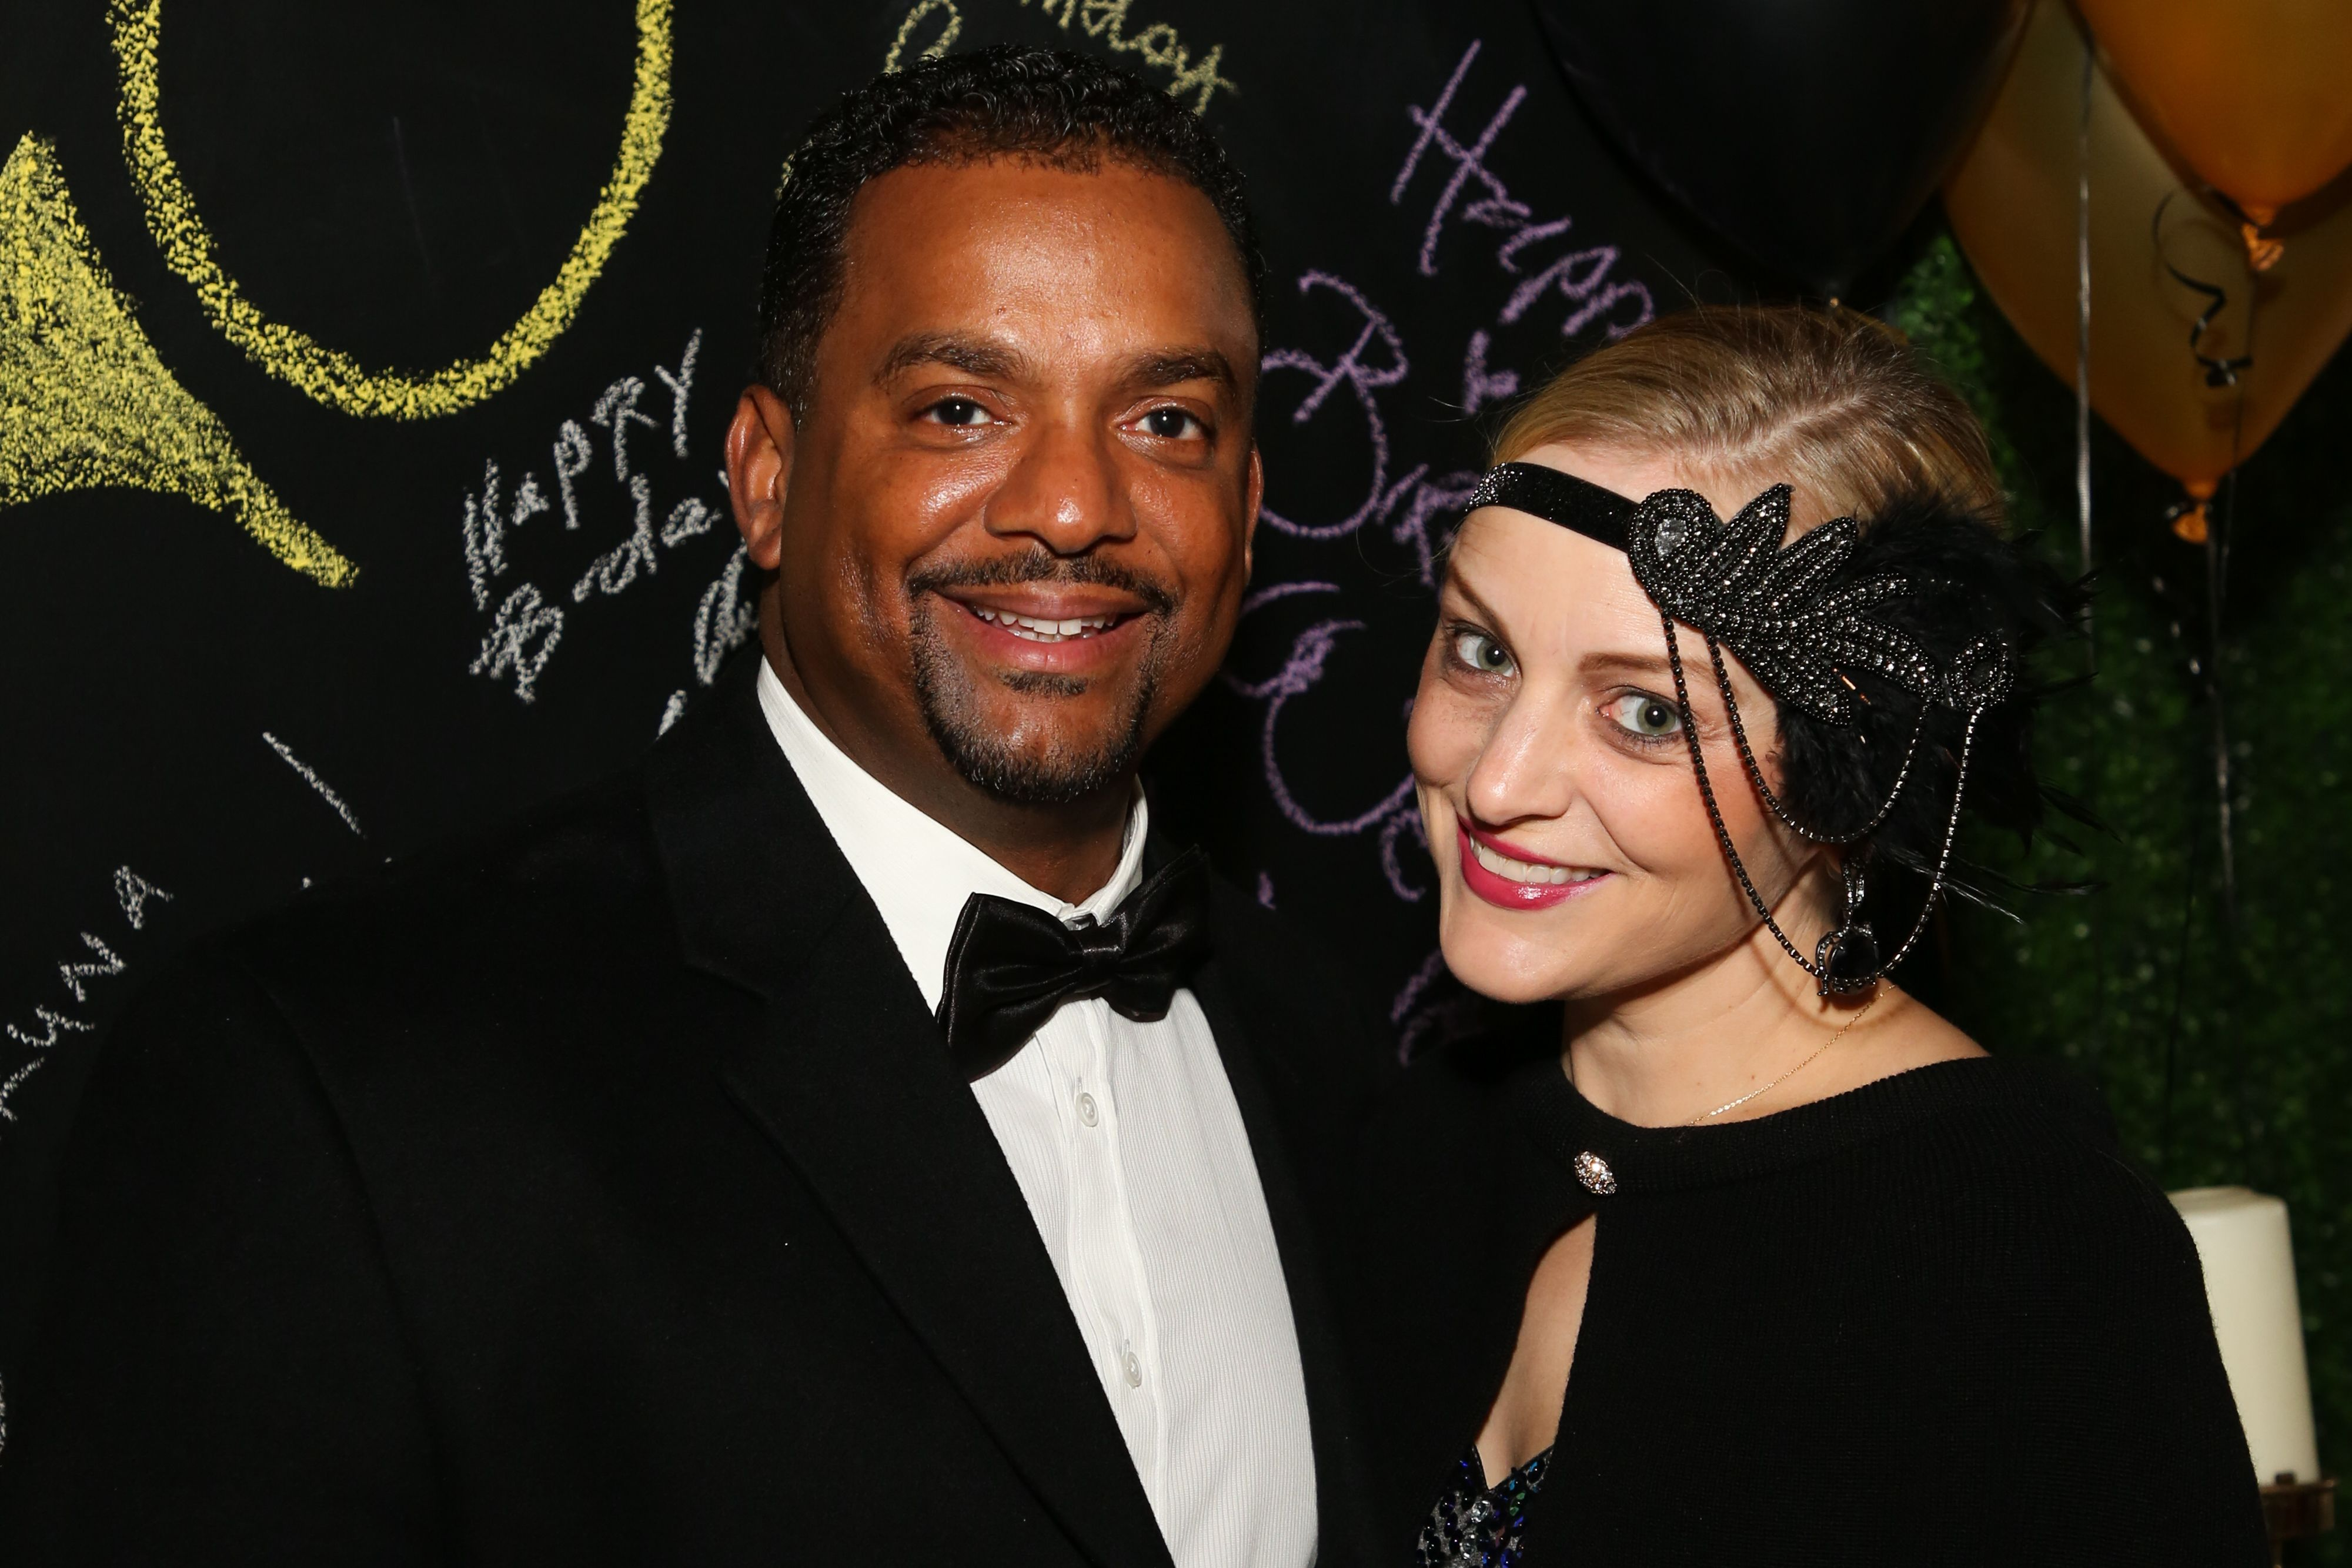 Actor Alfonso Ribeiro and his wife Angela Unkrich attend the birthday celebration of Keo Motsepe on November 30, 2019. | Photo: Getty Images